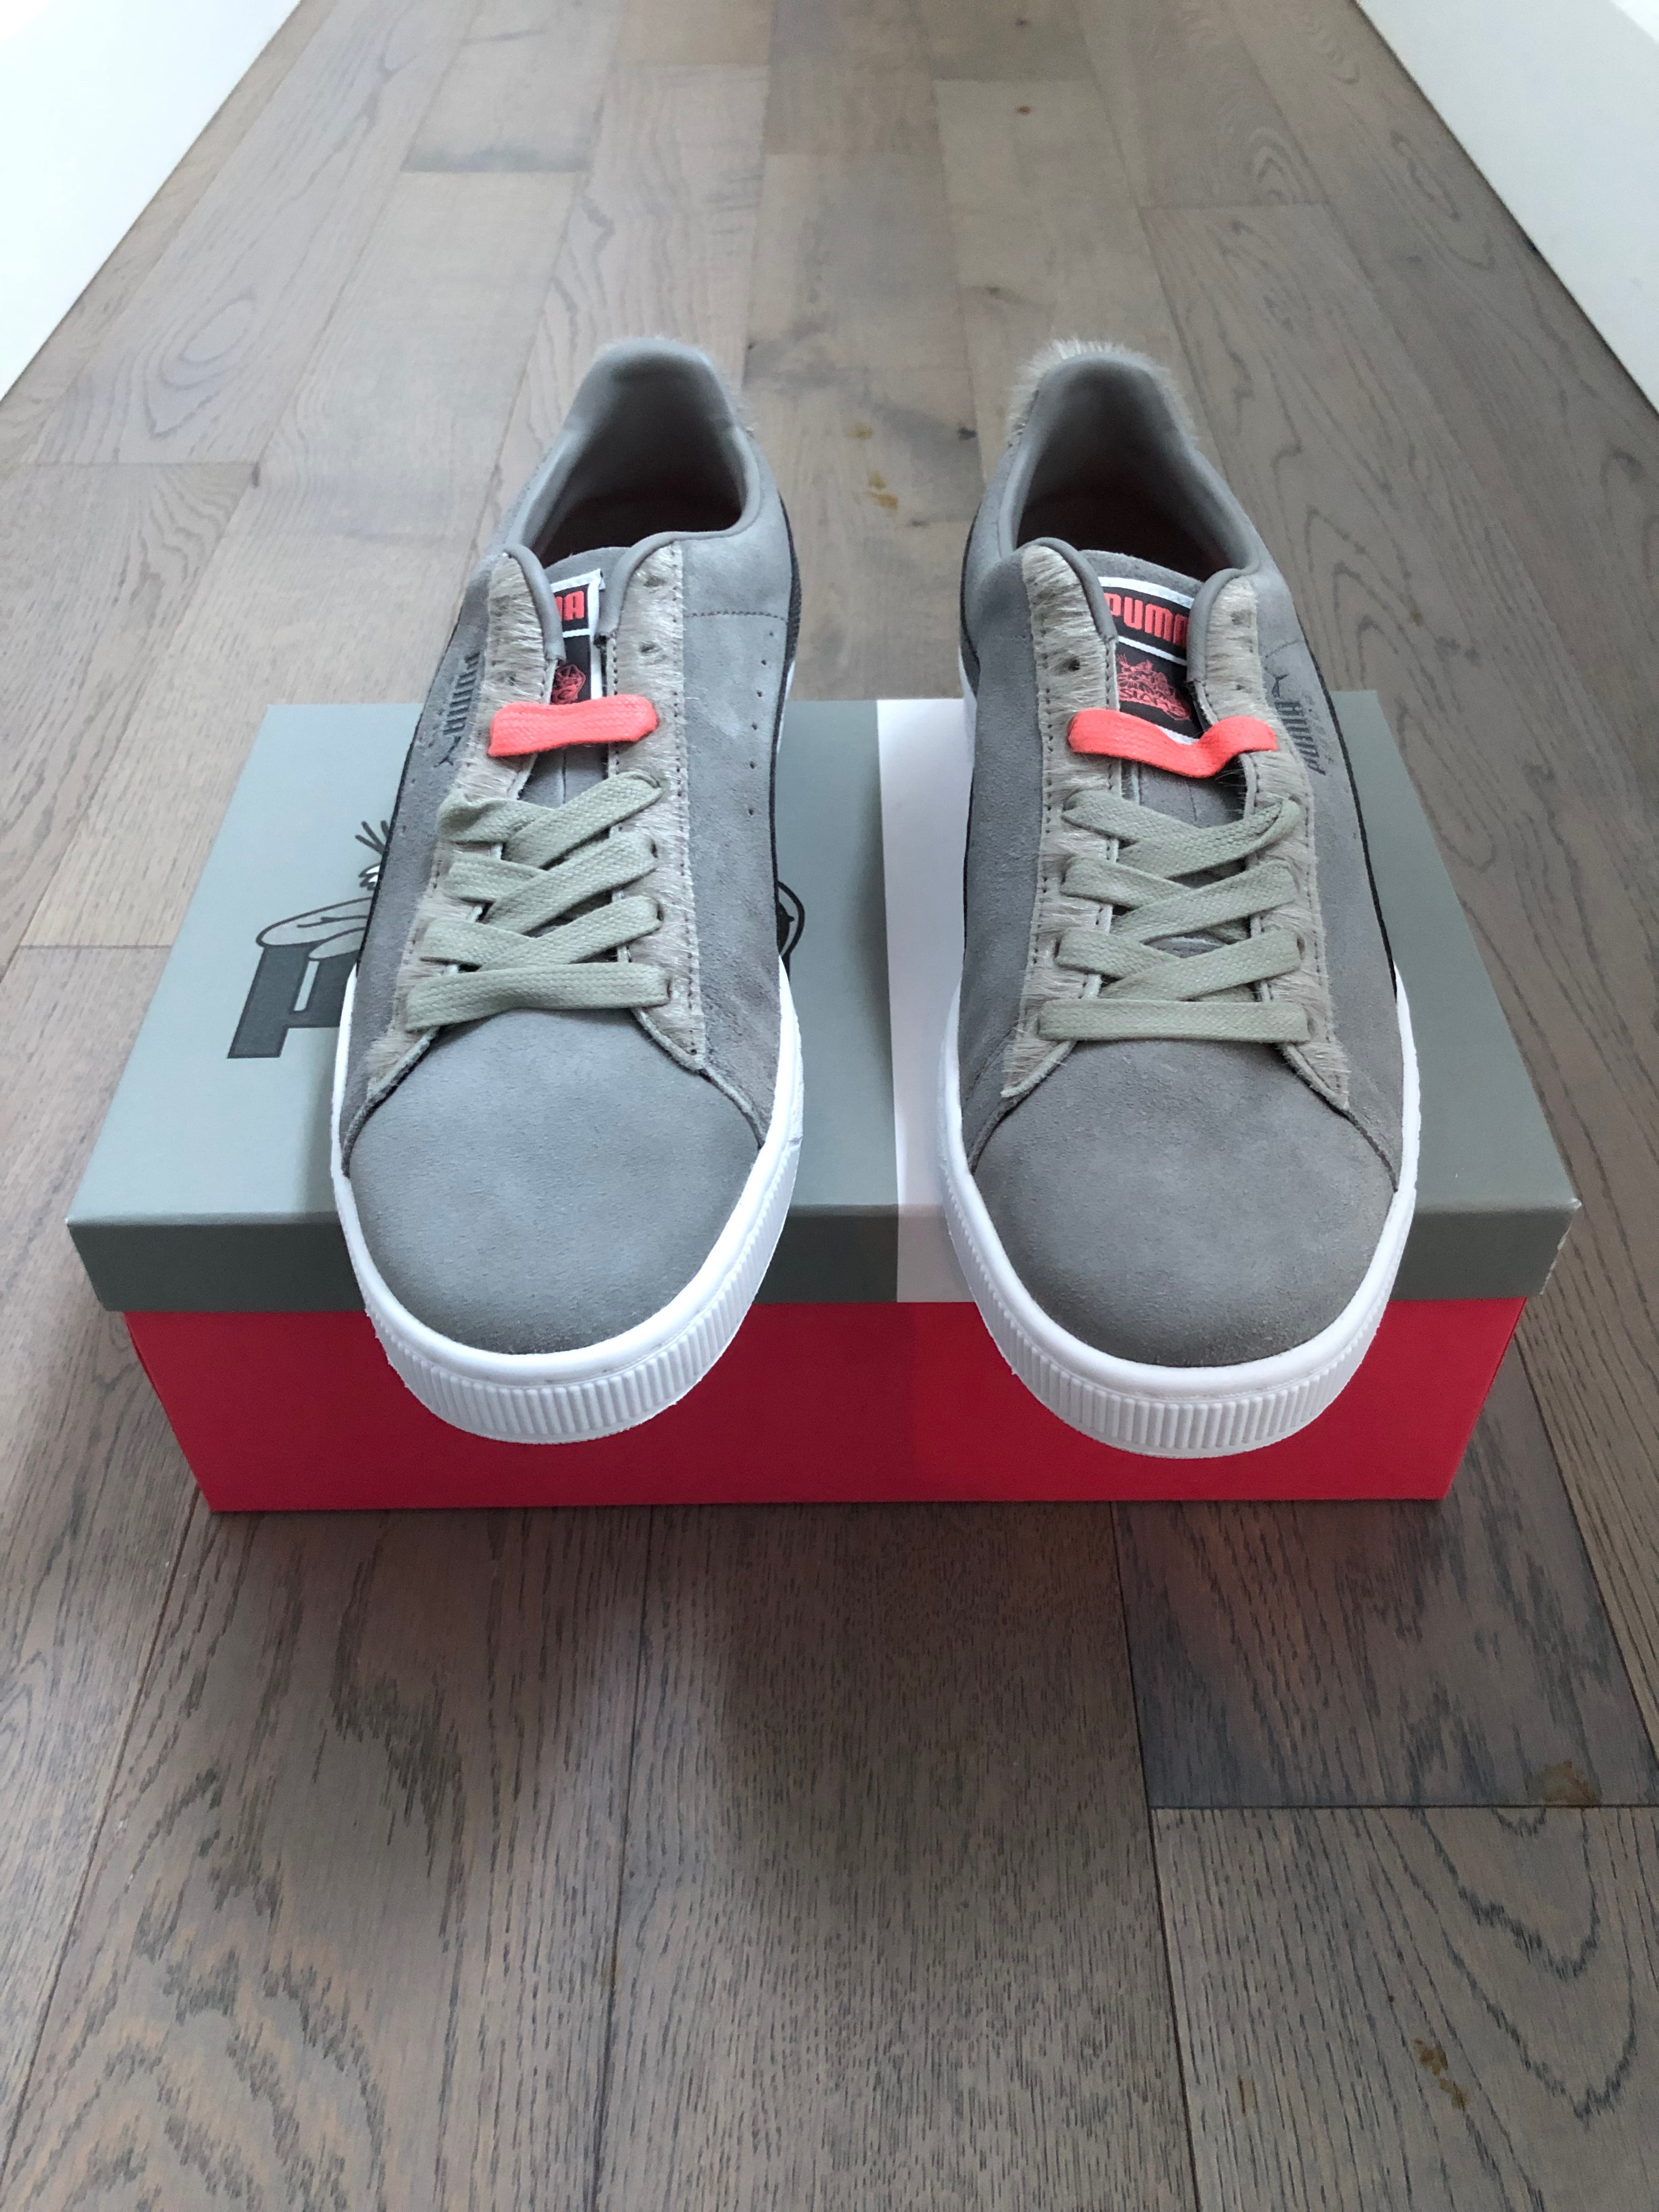 puma x staple pigeon suede classic sneakers